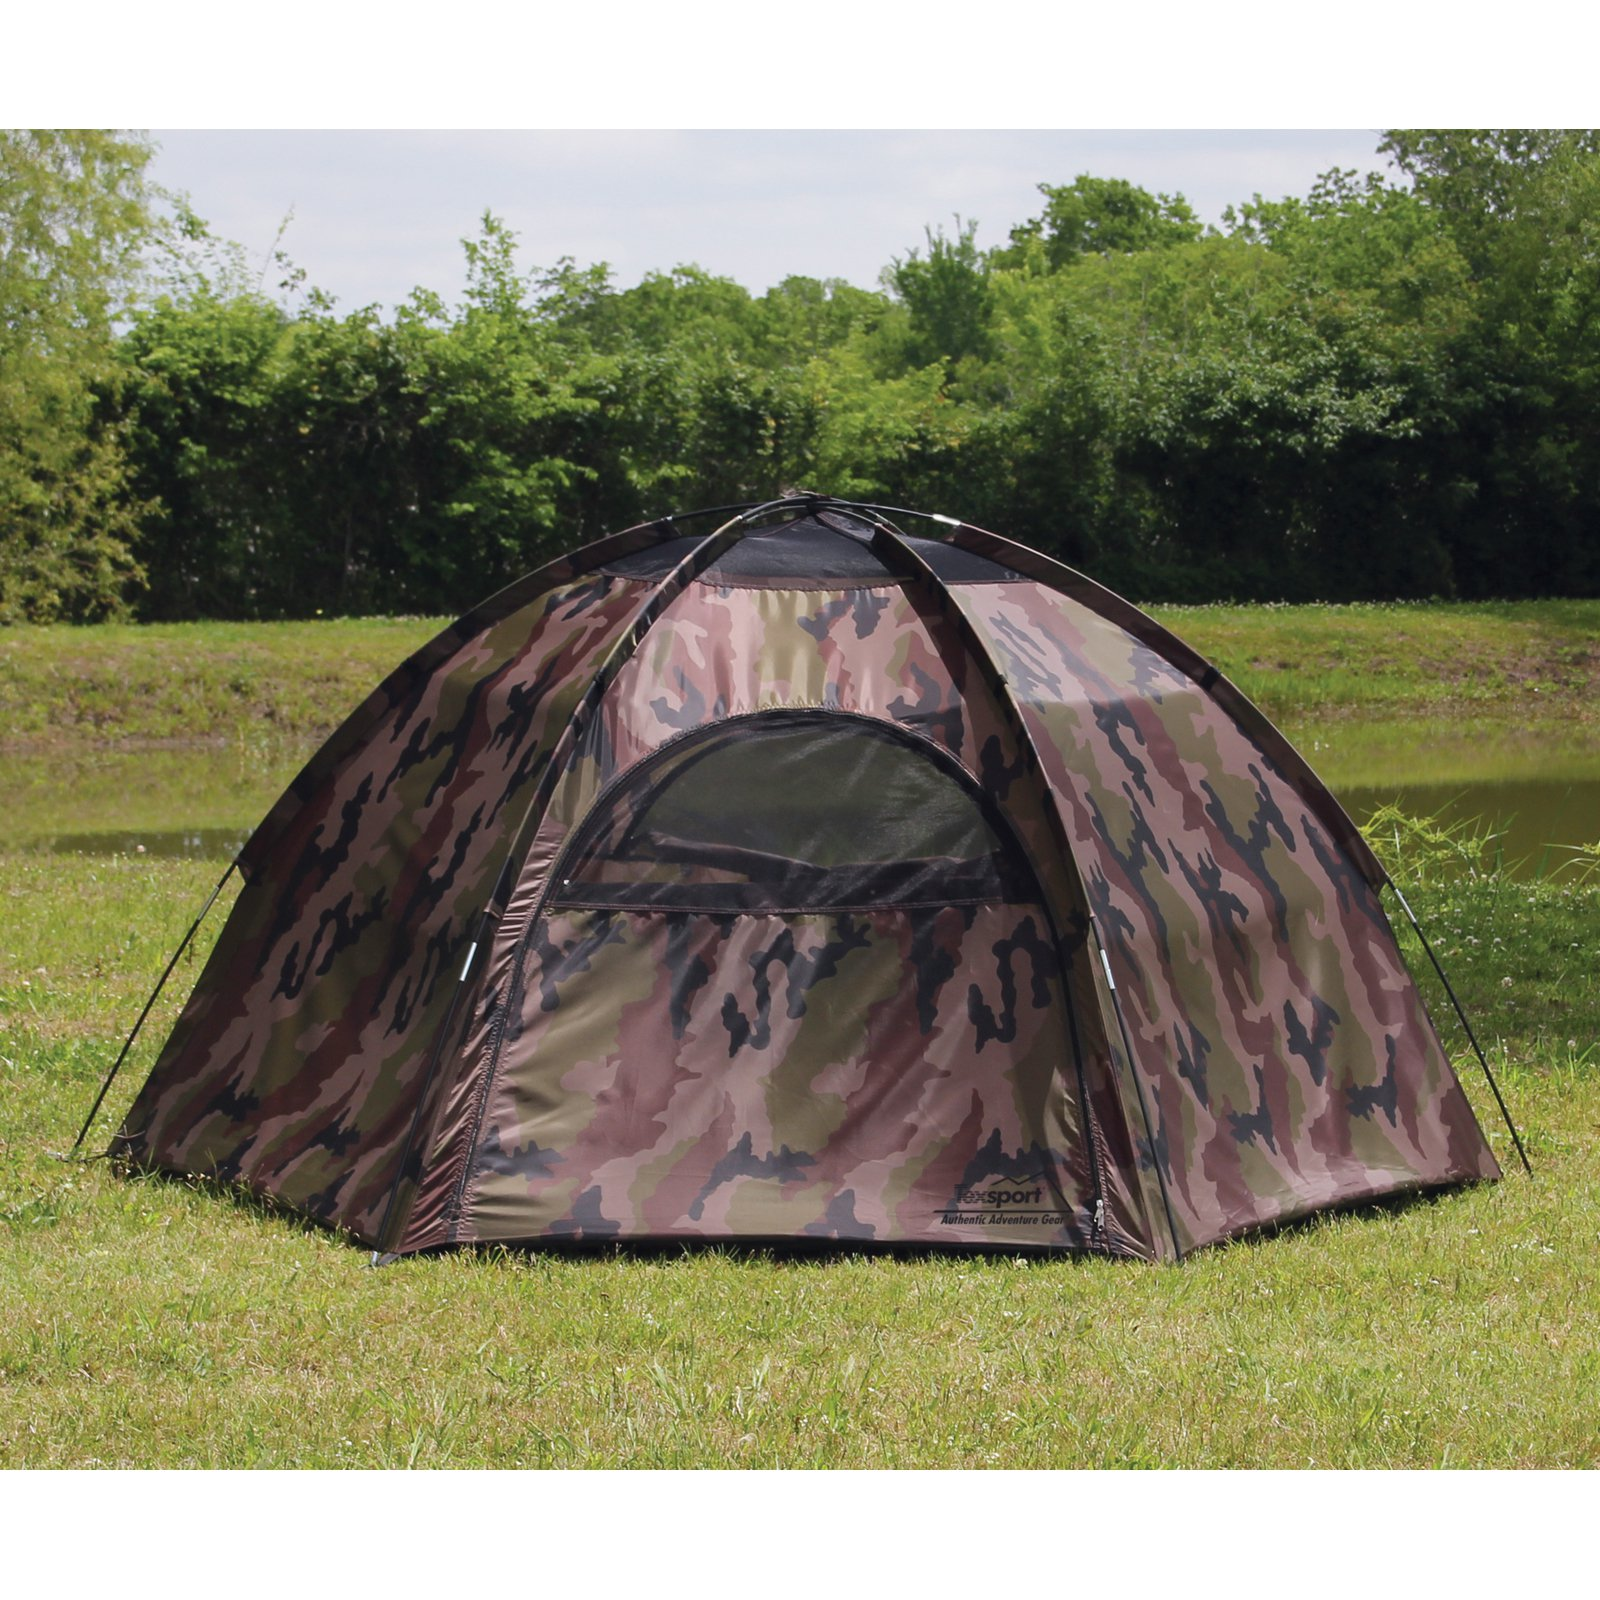 Texsport Hide-A-Way Camouflage Hexagon Dome Tent